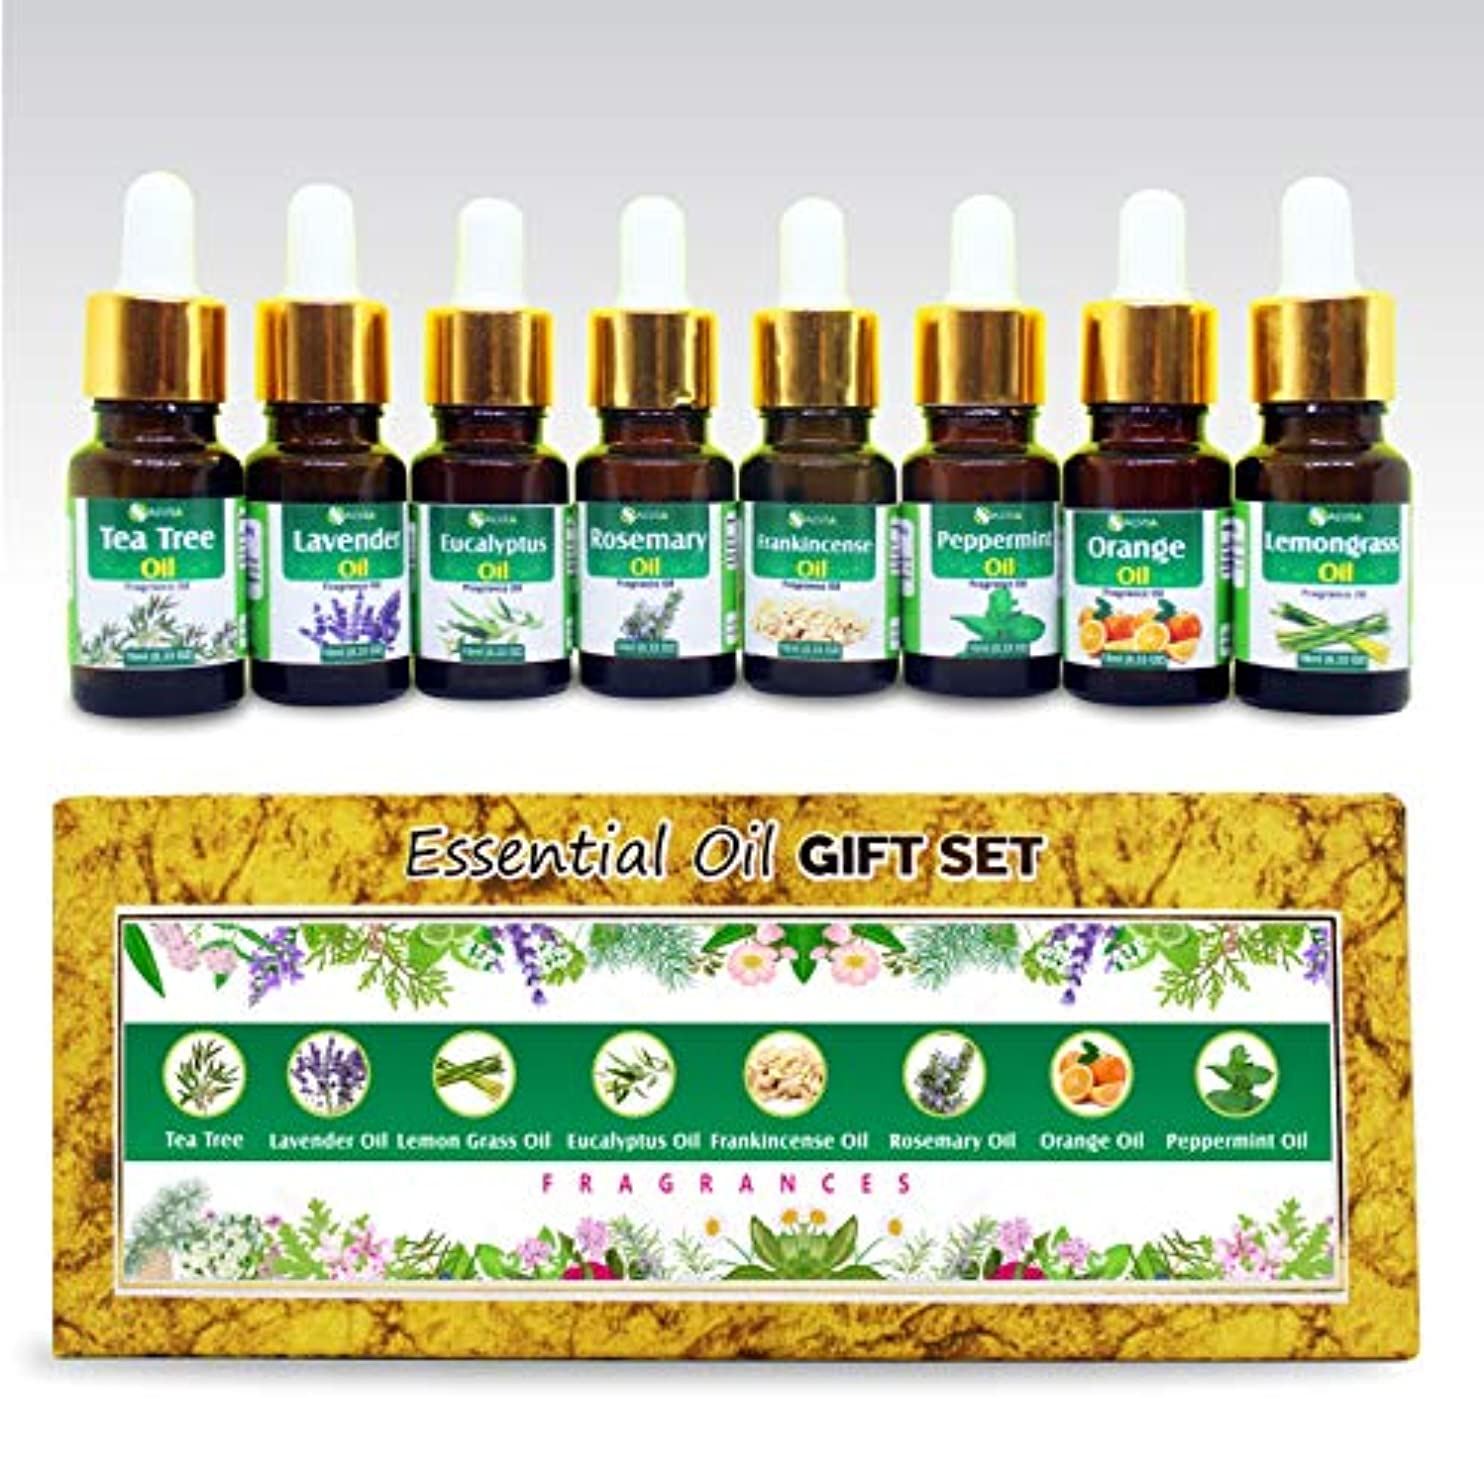 言及する移植施しAromatherapy Fragrance Oils - Pack of 8 Essential Oils 100% Natural Therapeutic Oils - 10 ML each (Tea Tree, Lavender...